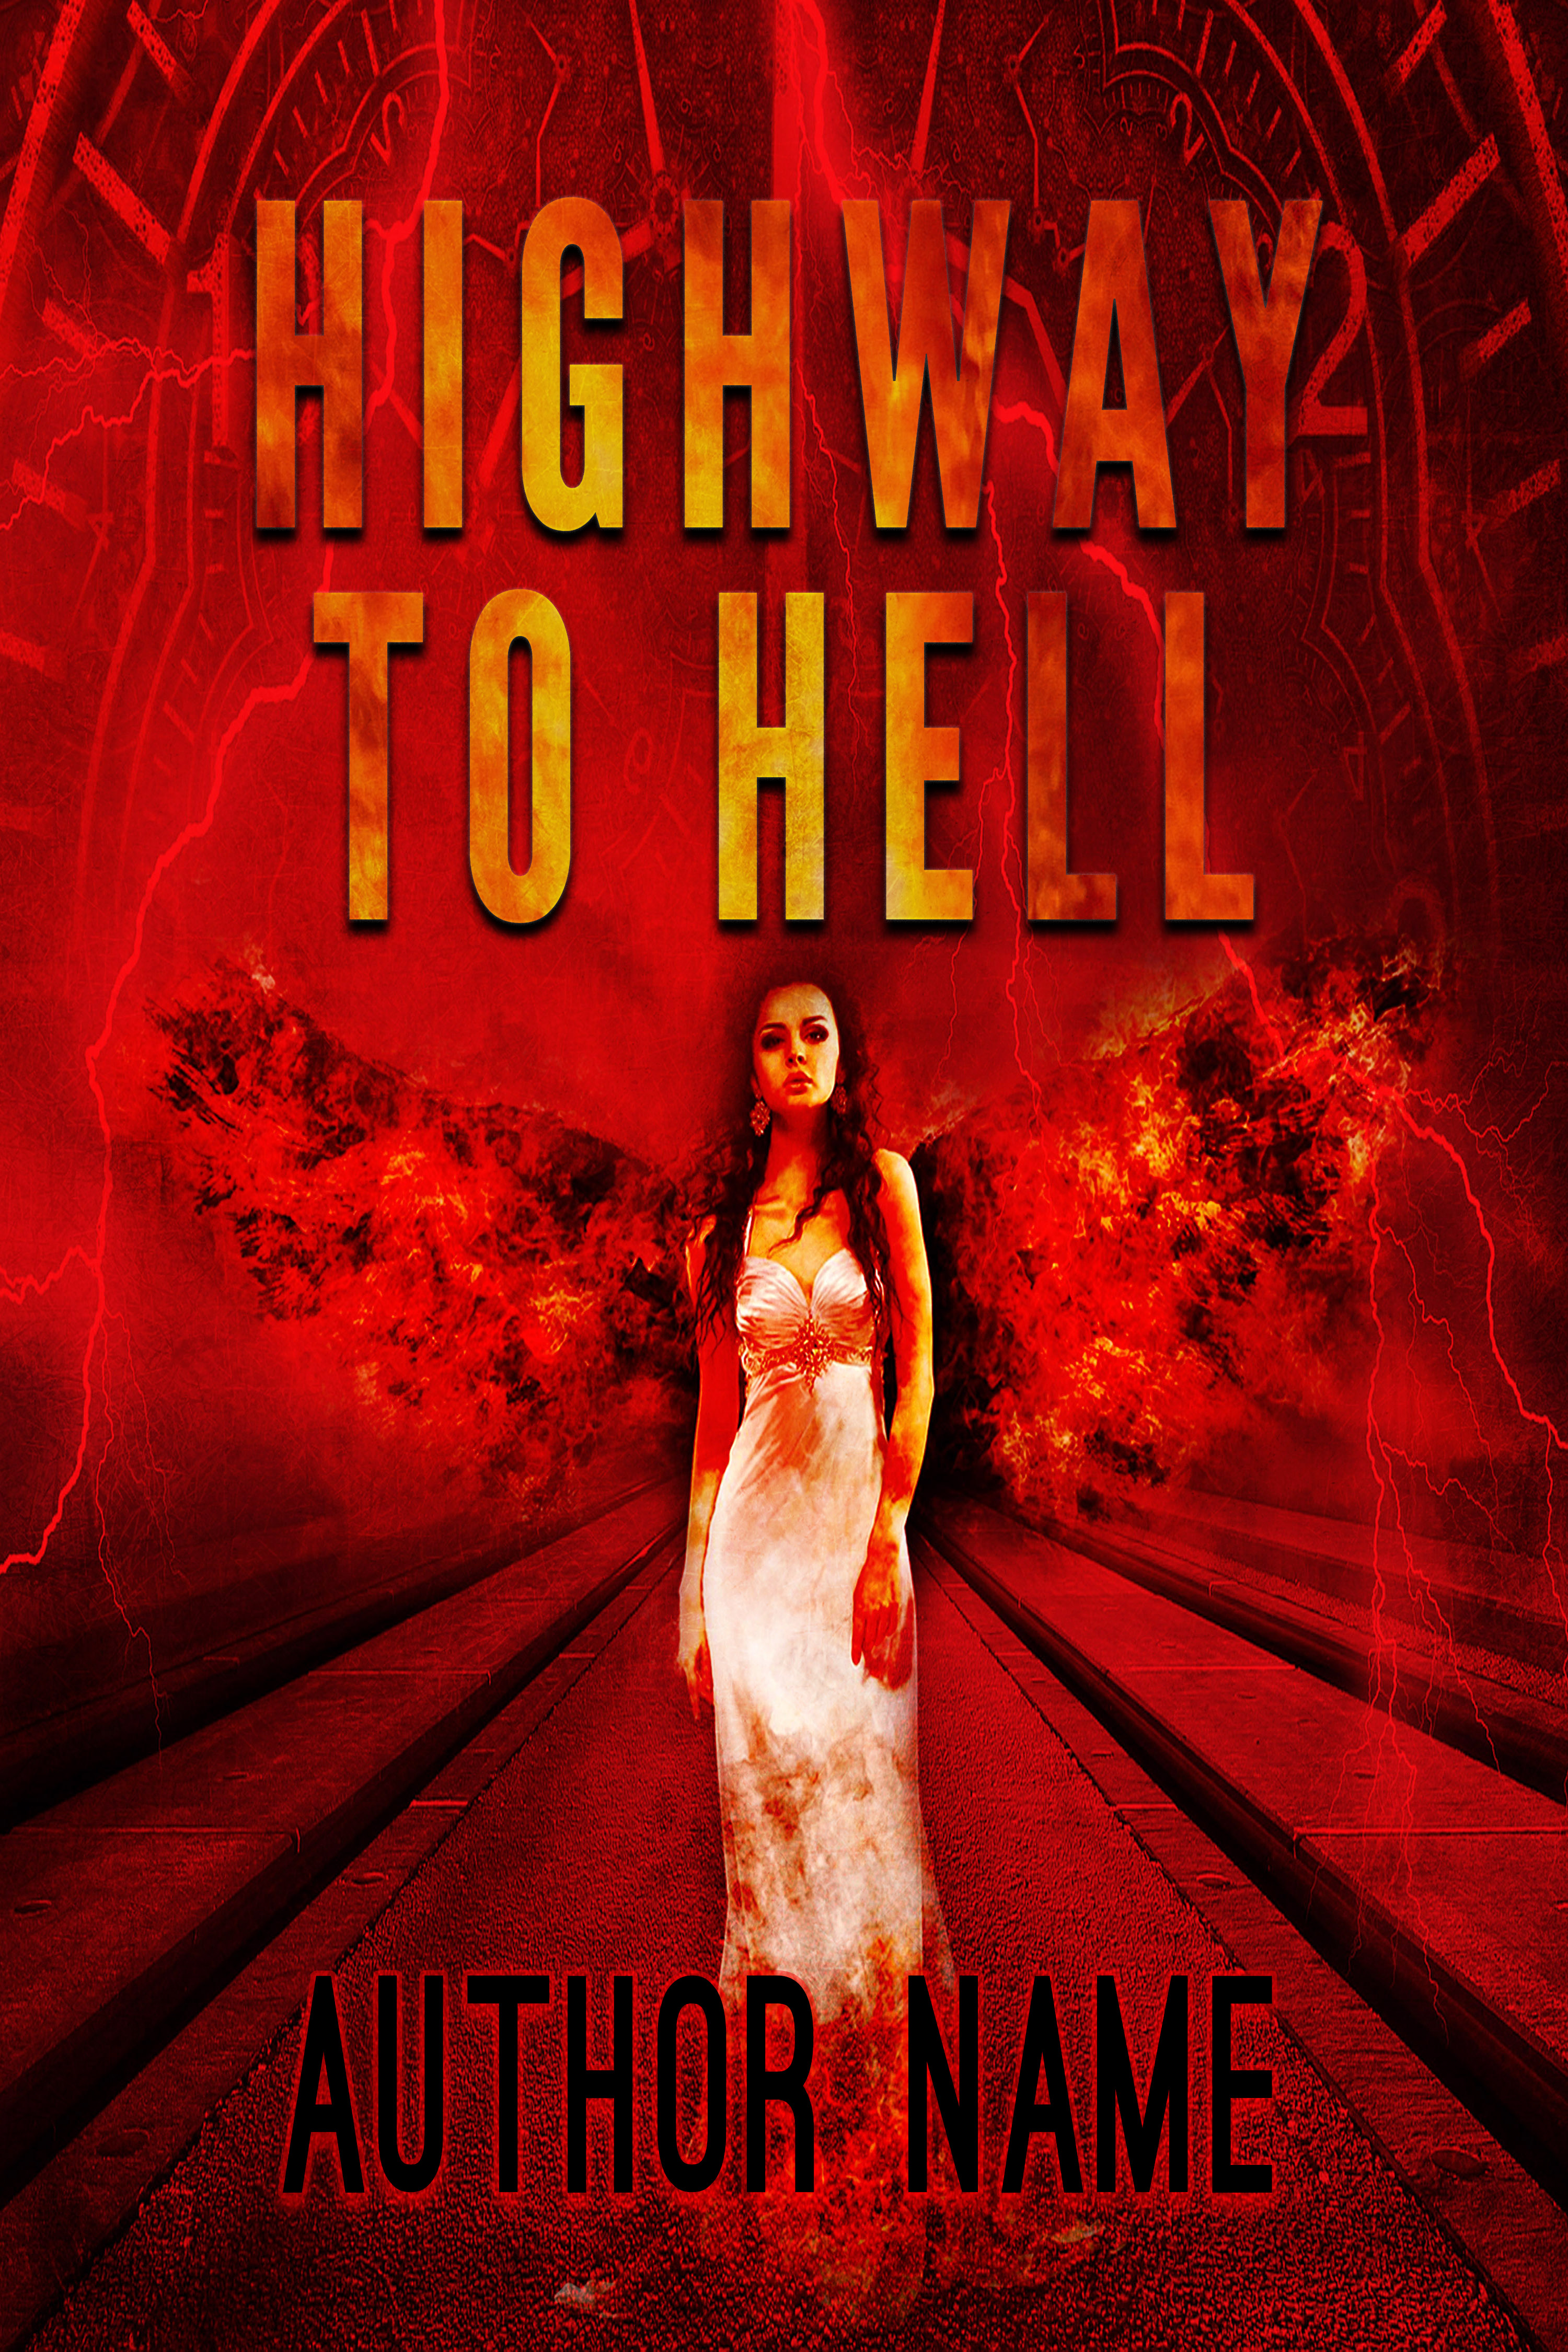 High Way To Hell